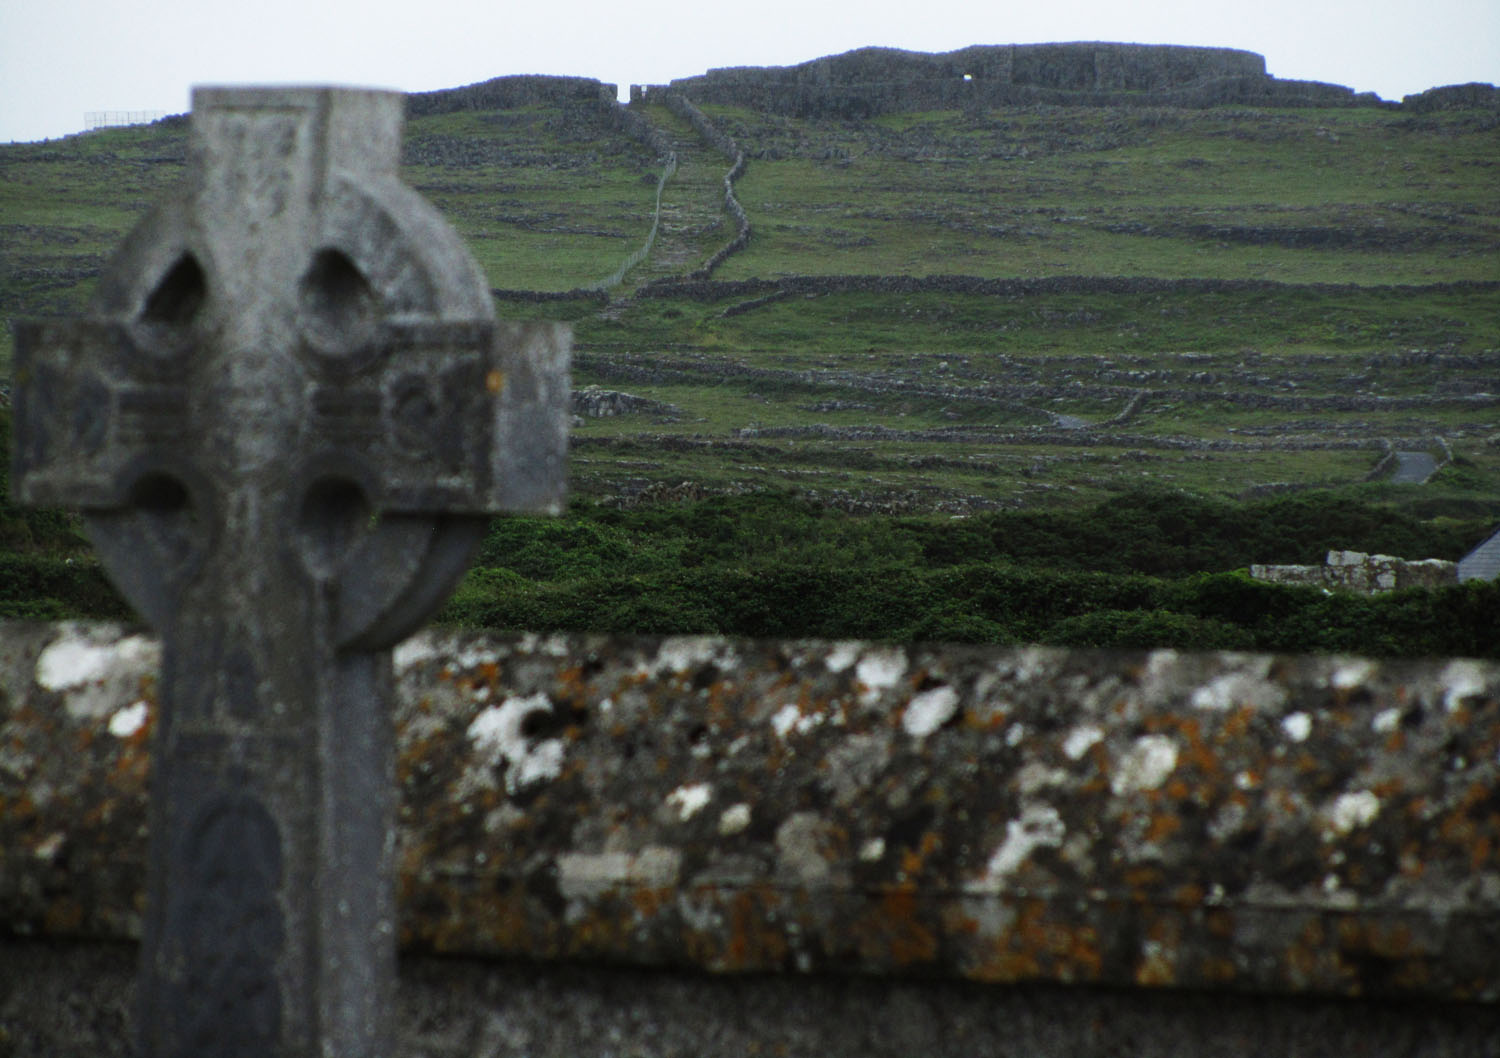 Ireland-Sights-And-Scenery-Aran-Islands-Inishmore-Dun-Aengus